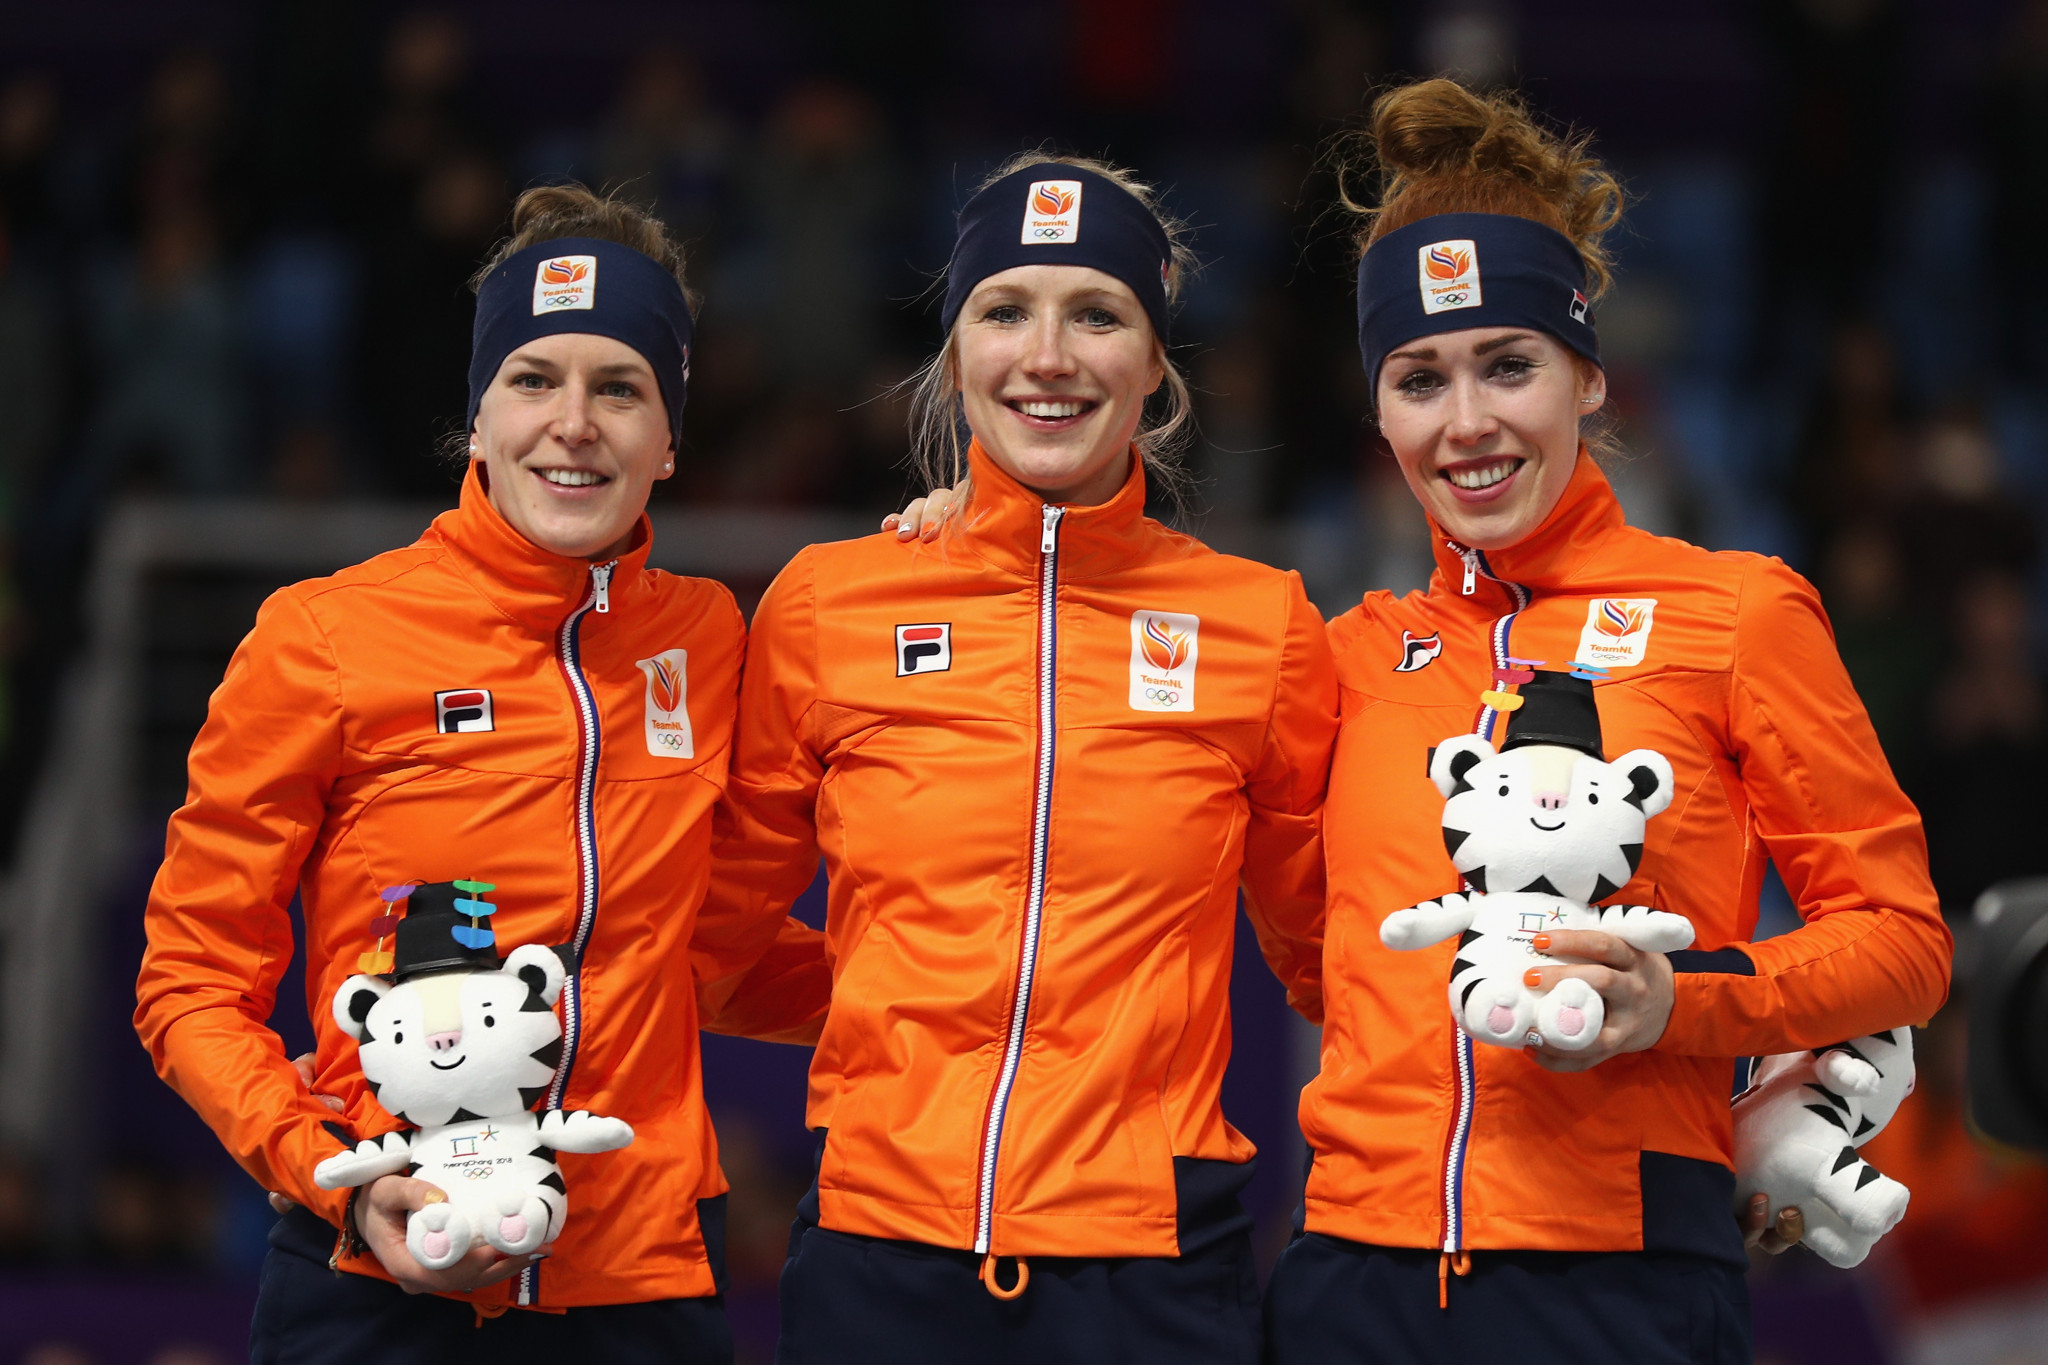 Dutch Speed Skaters Dominate Women's 3000-M Final